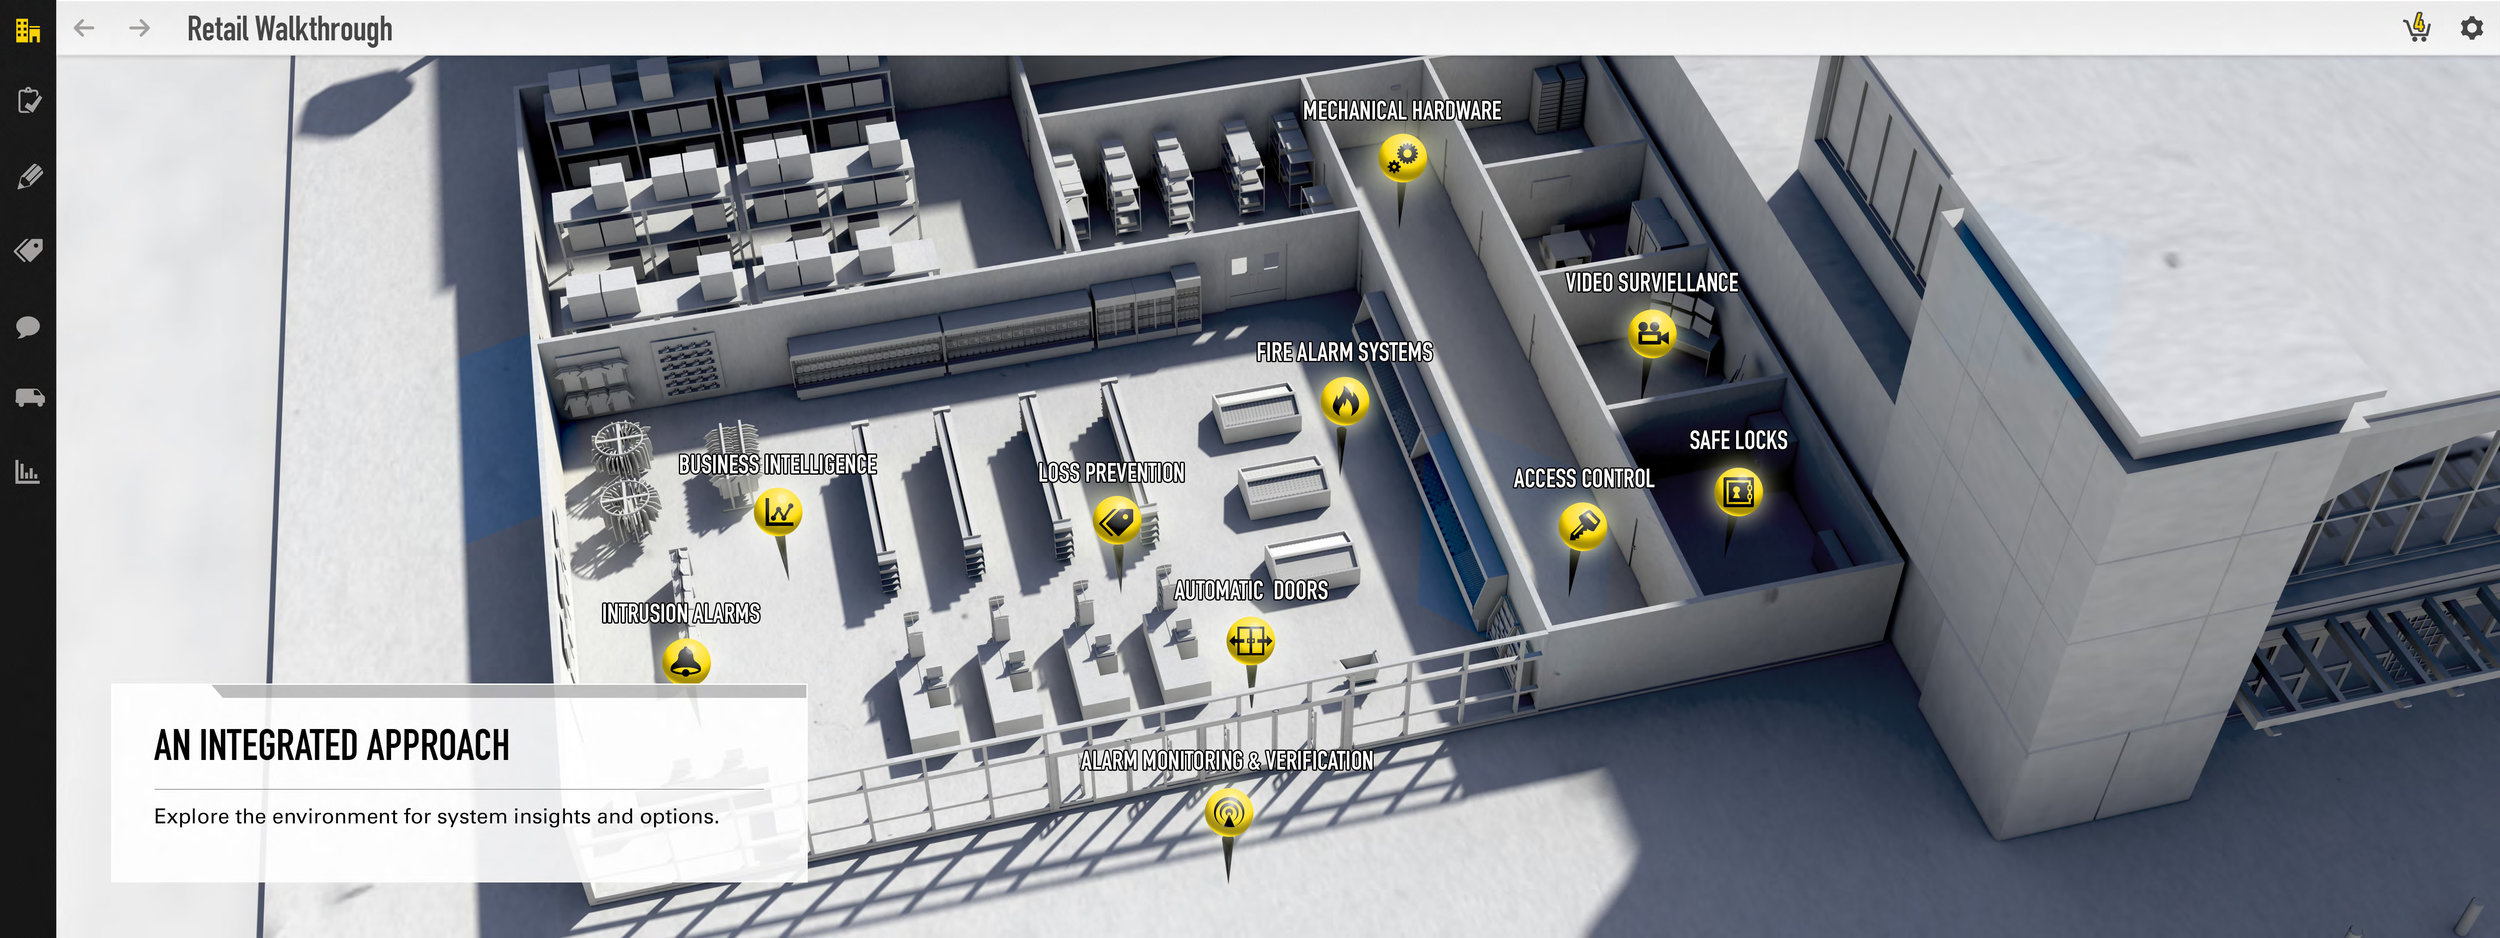 Concept render of Retail floor plan and pins.